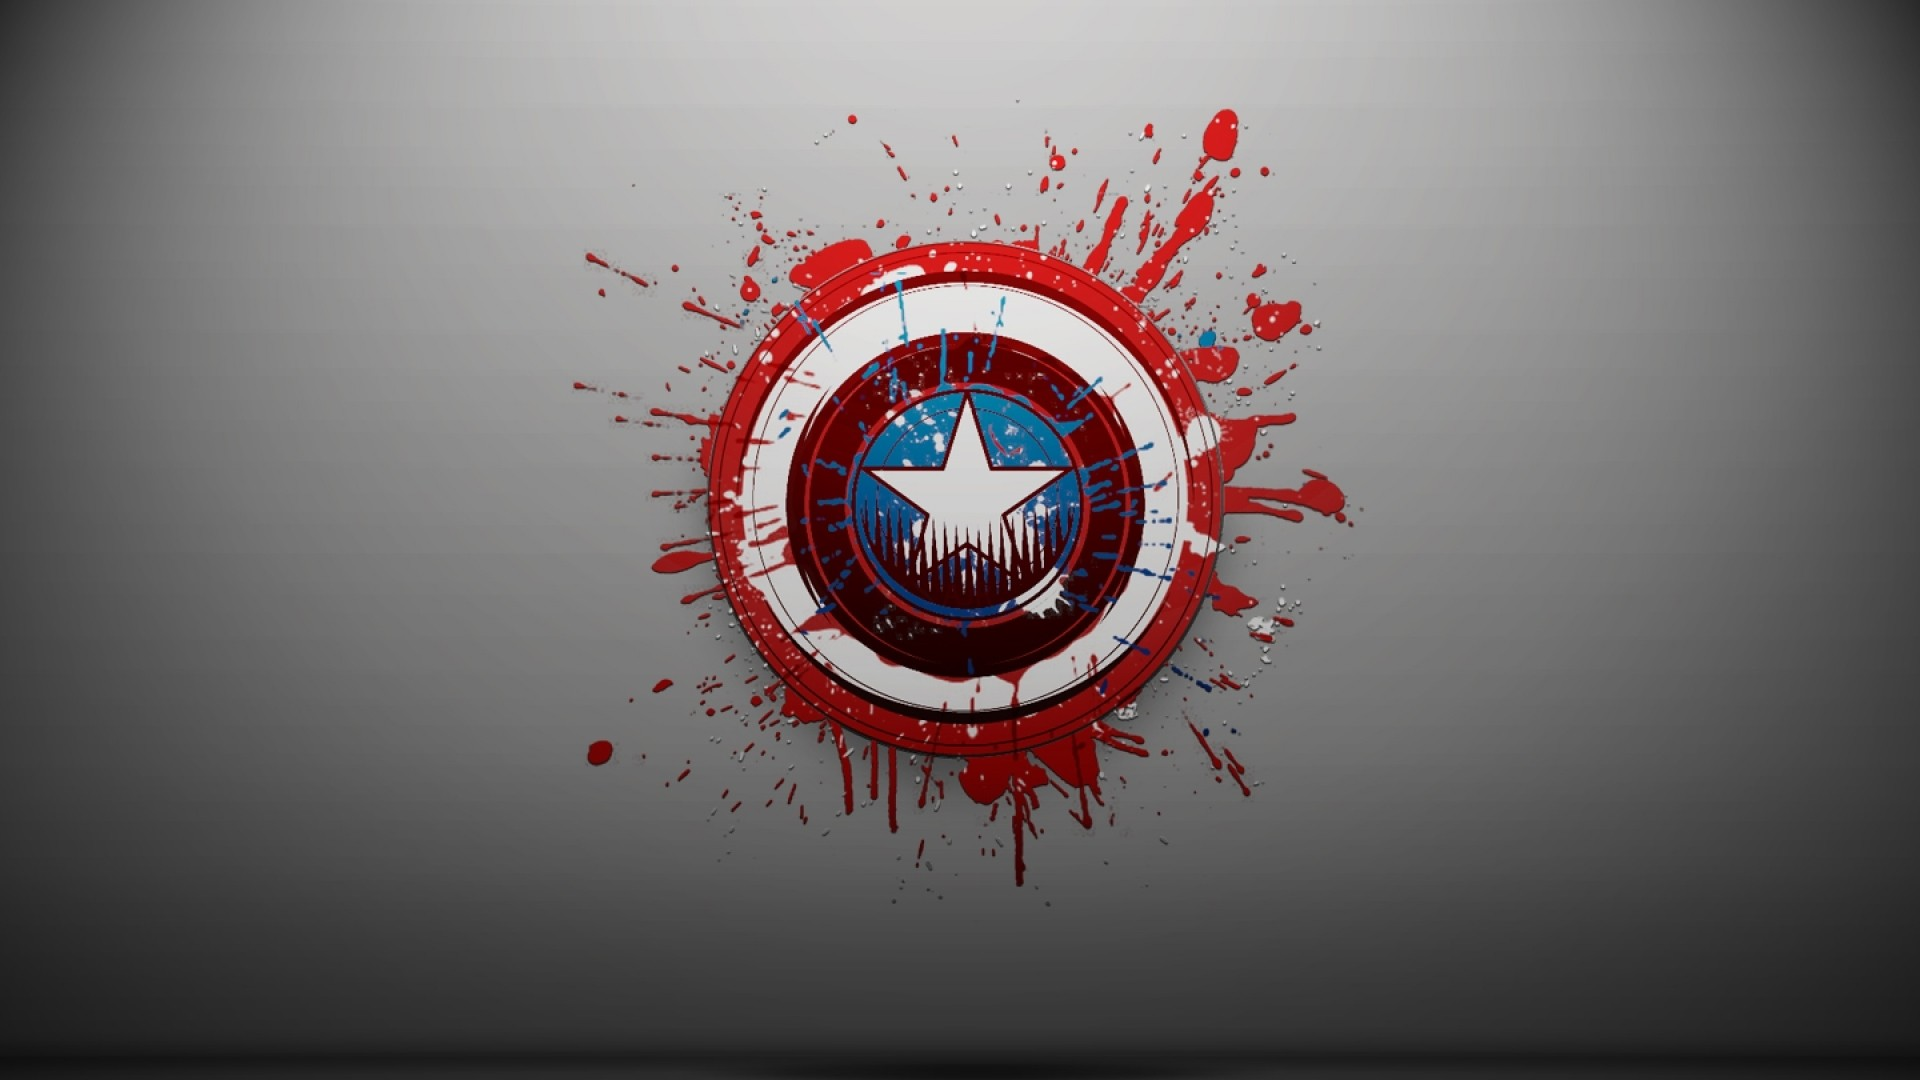 Marvels Wallpapers \u00b7\u2460